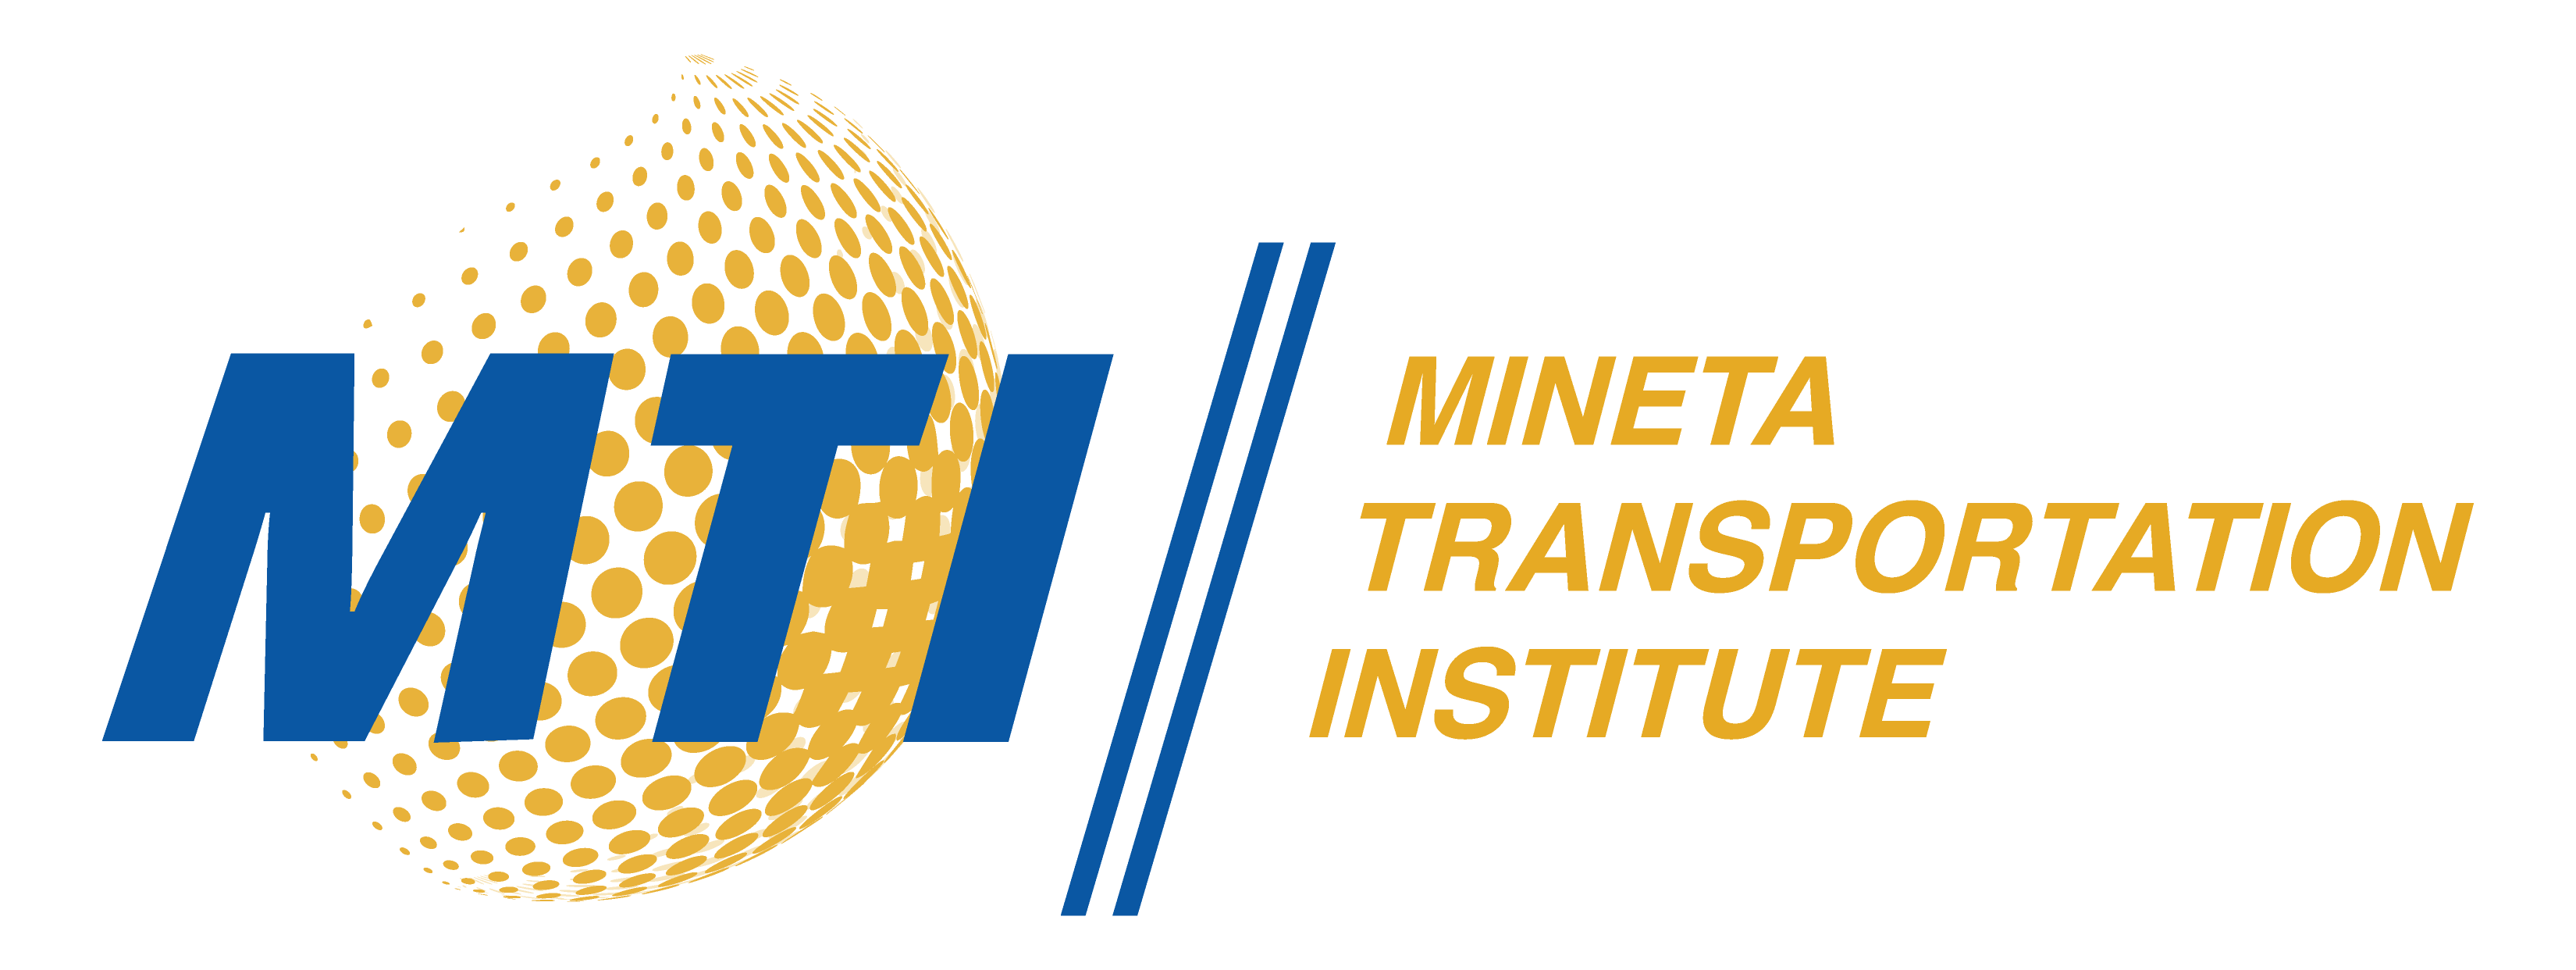 Mineta Transportation Institute Publications